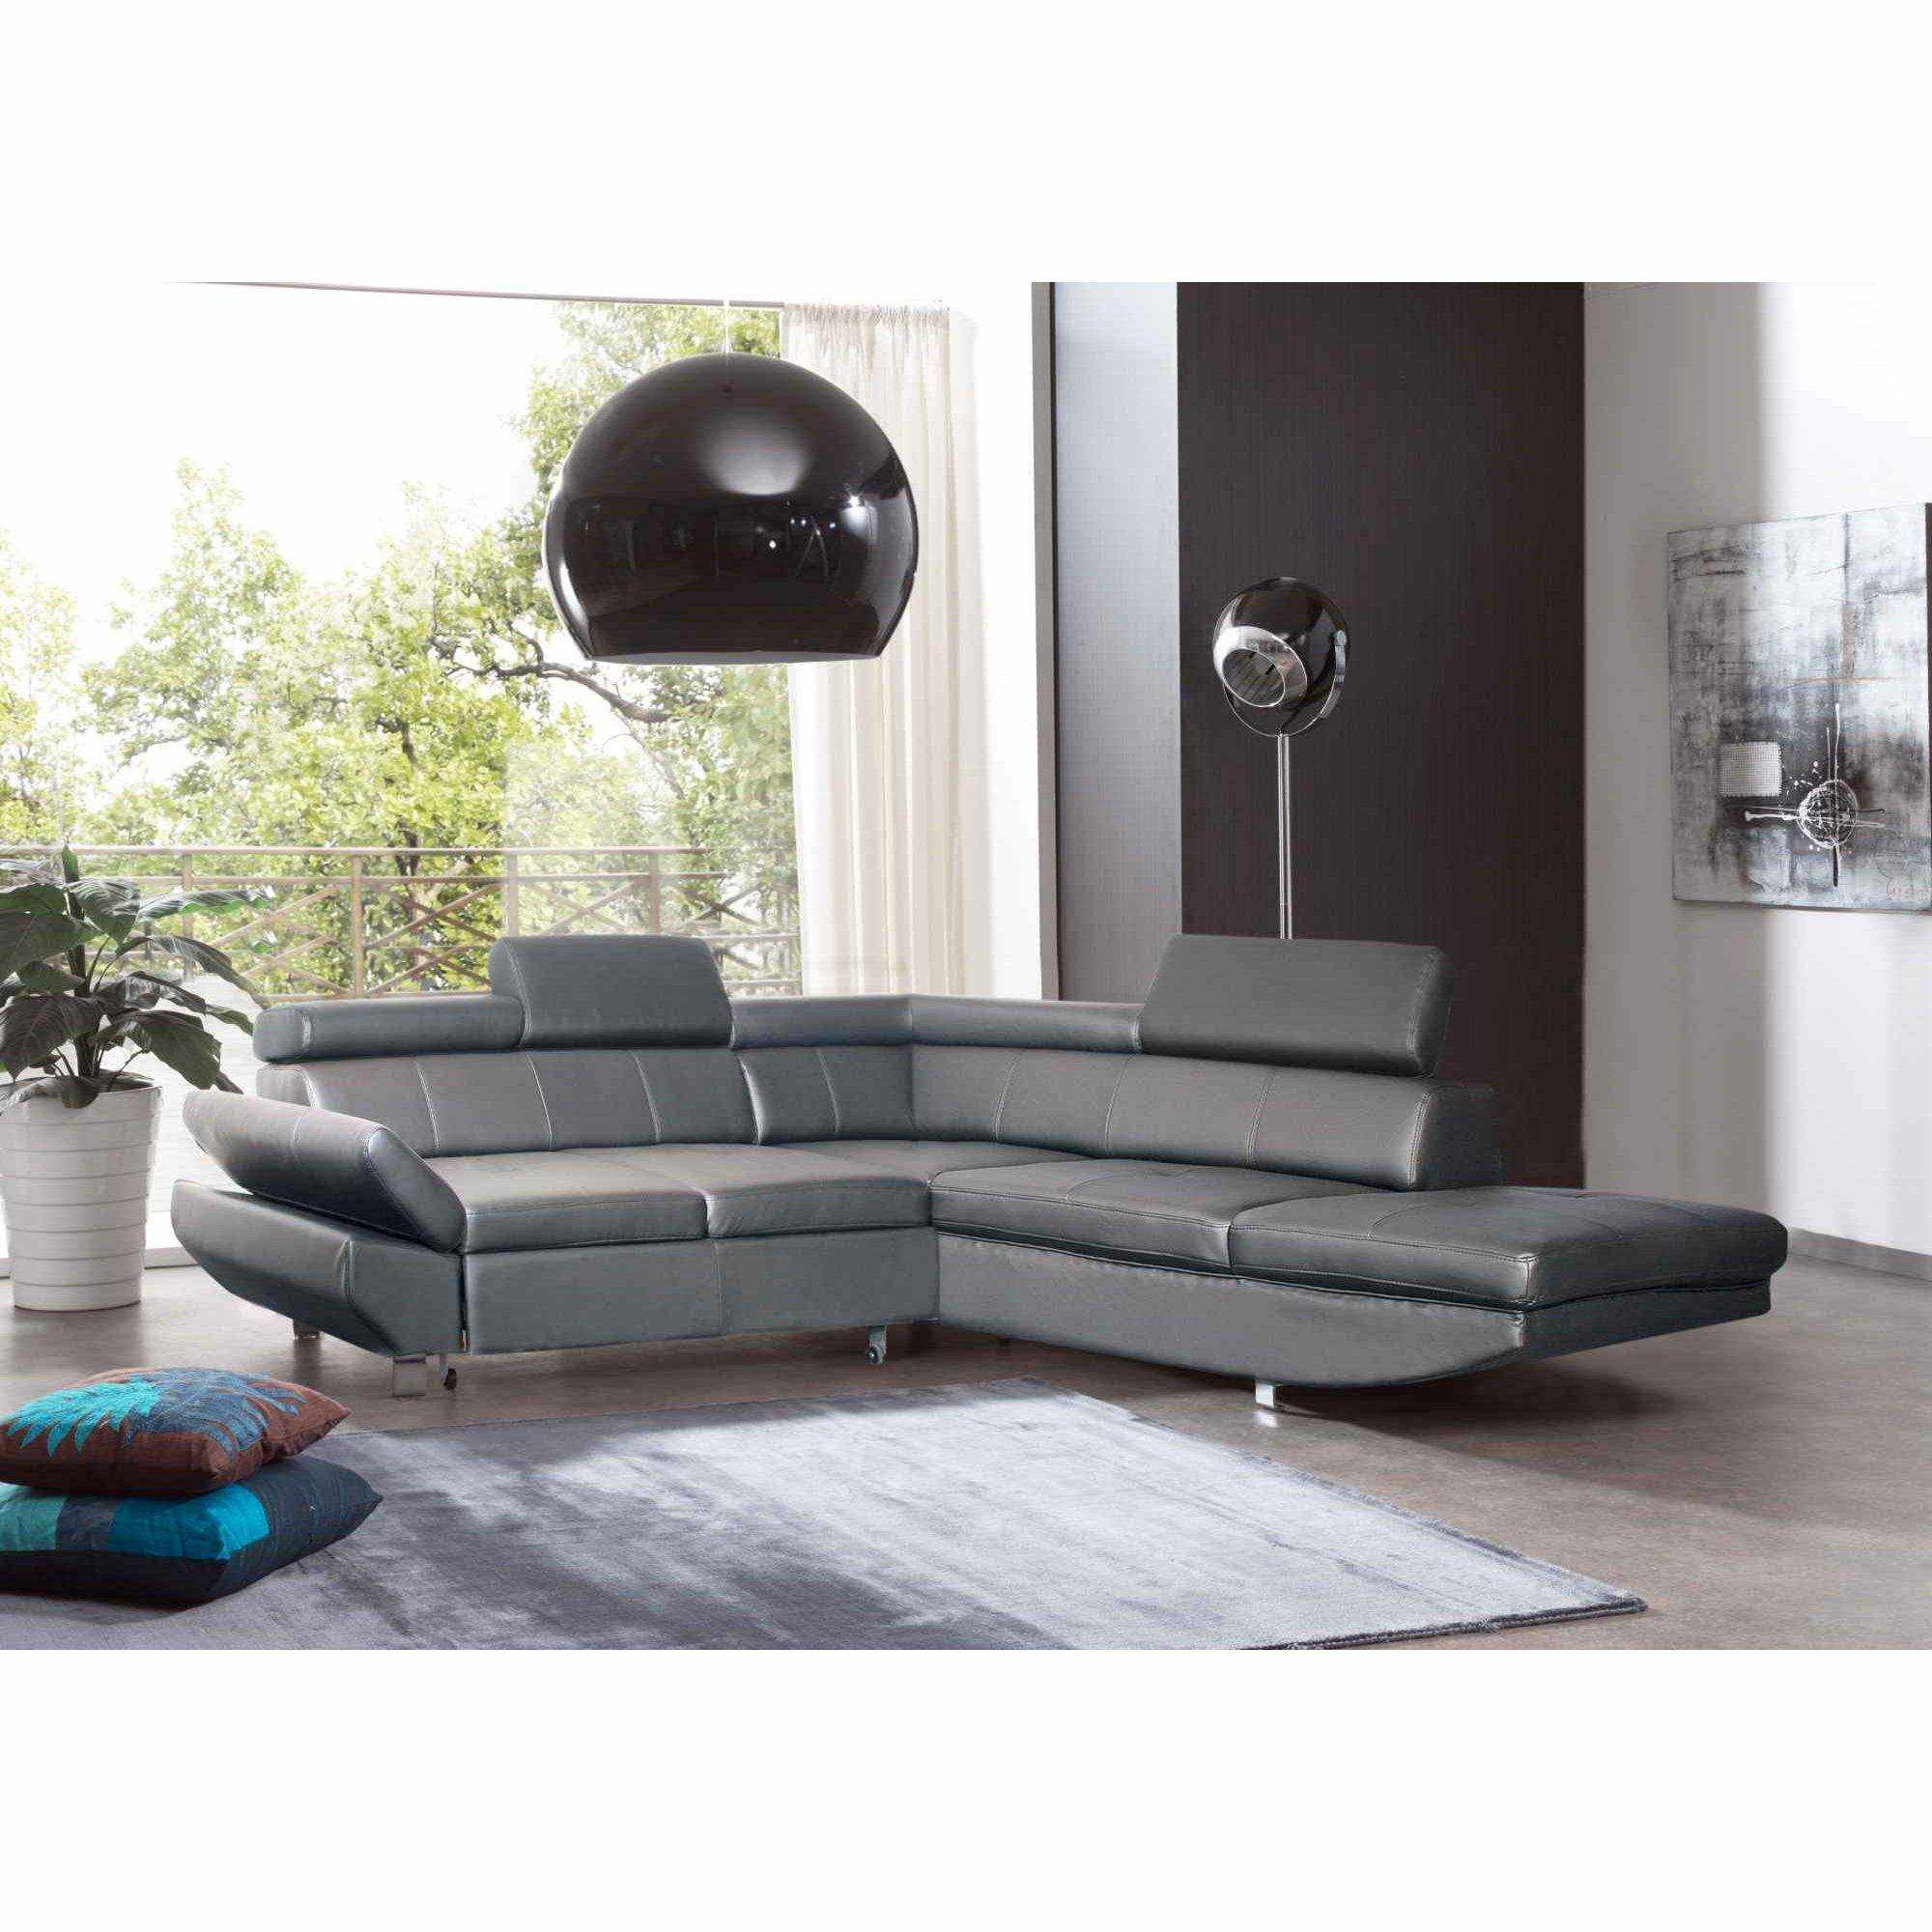 Deco in paris canape d angle design convertible gris for Canape d angle design